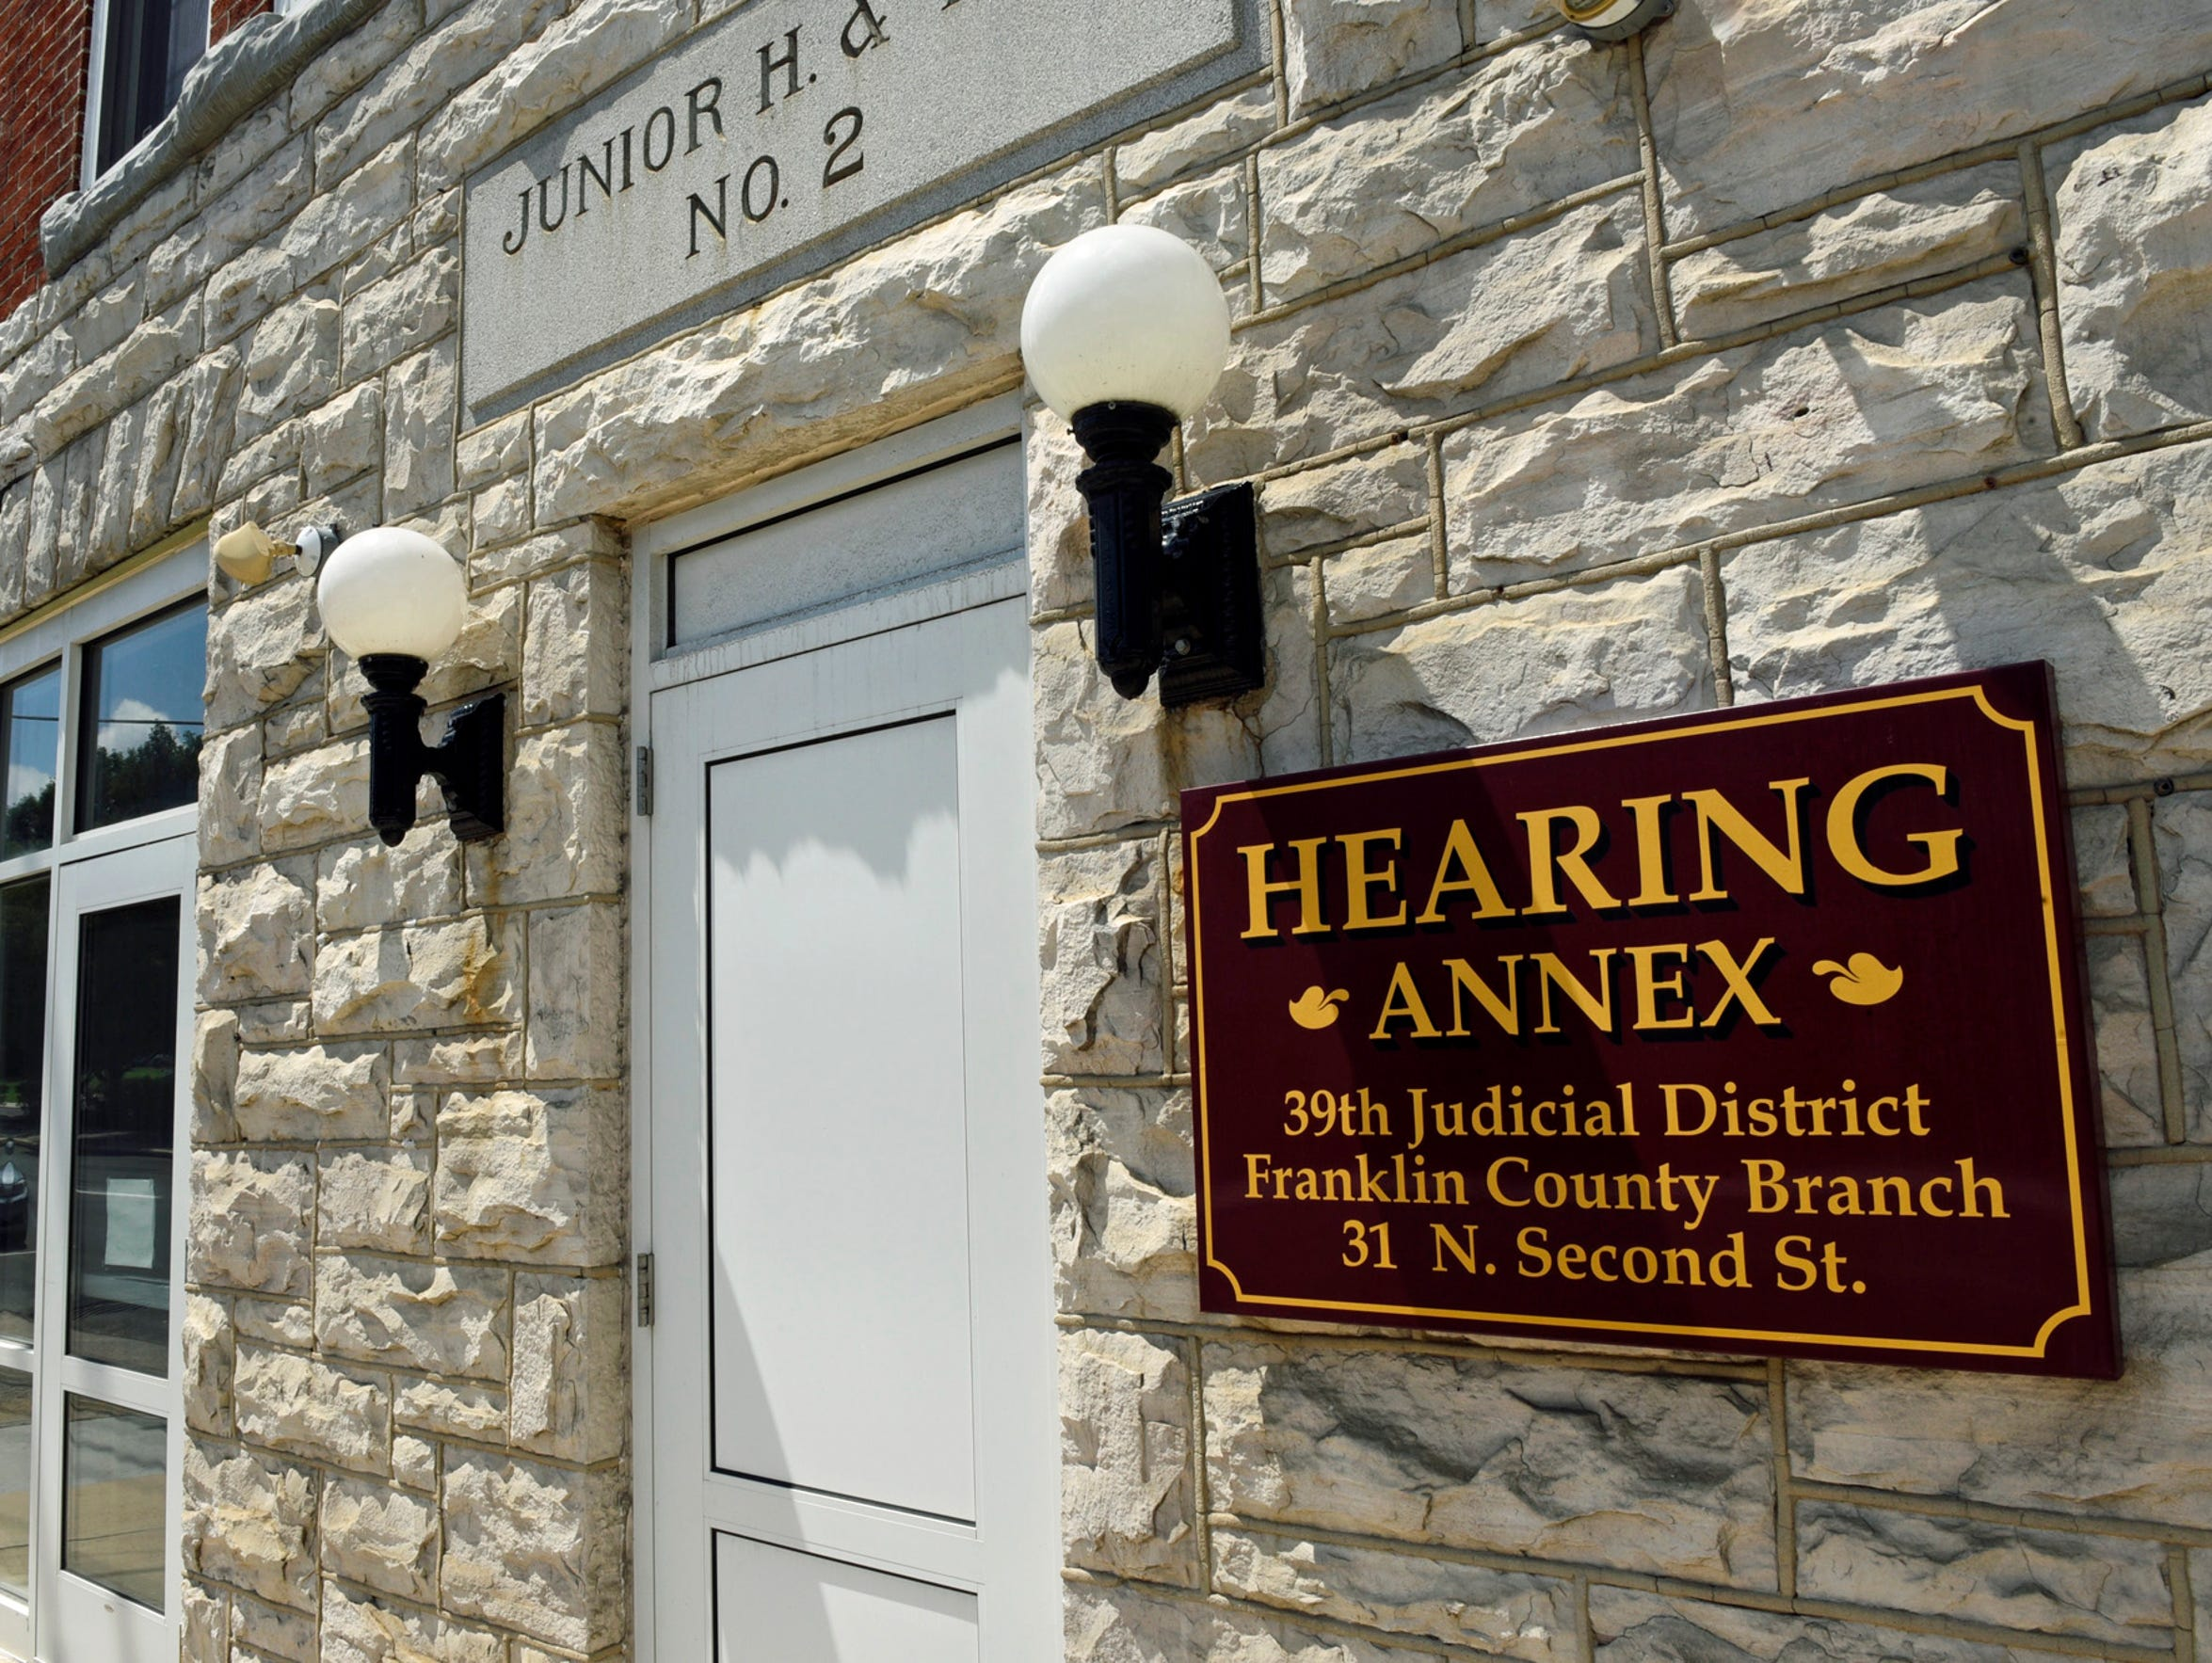 The Hearing Annex, one of the newest buildings in the